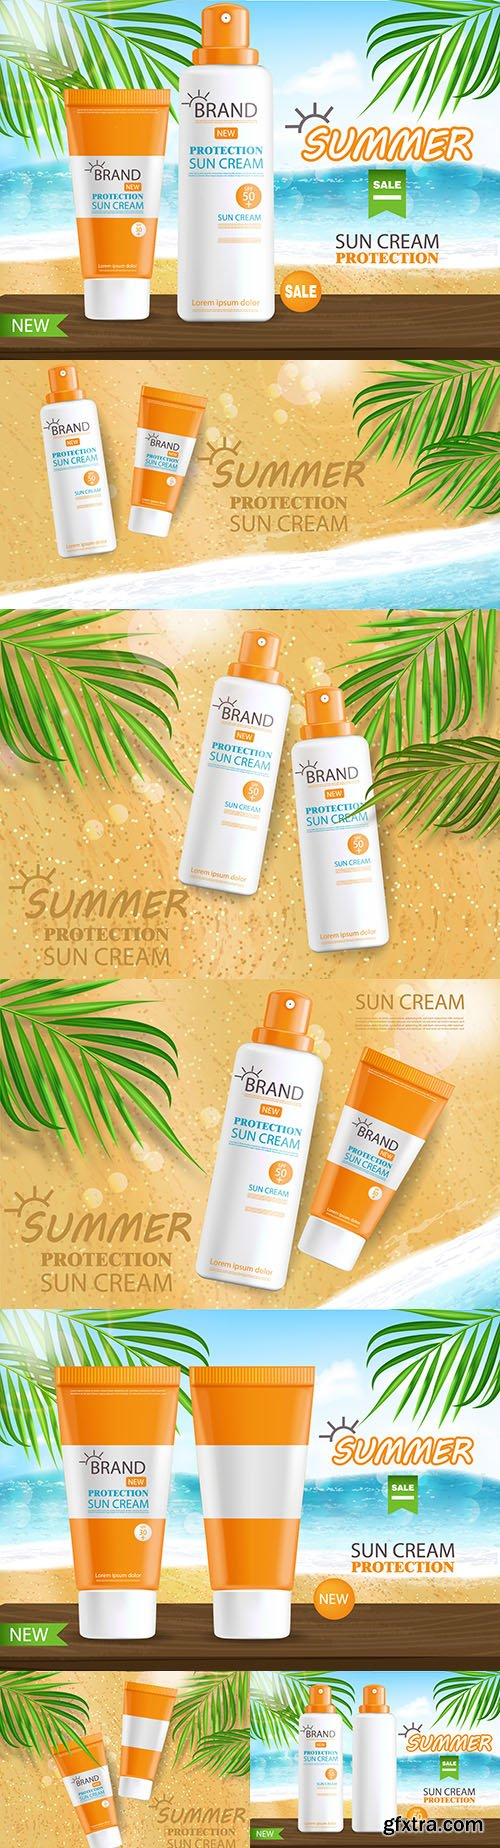 Sunscreen and tropical banner summer cosmetics